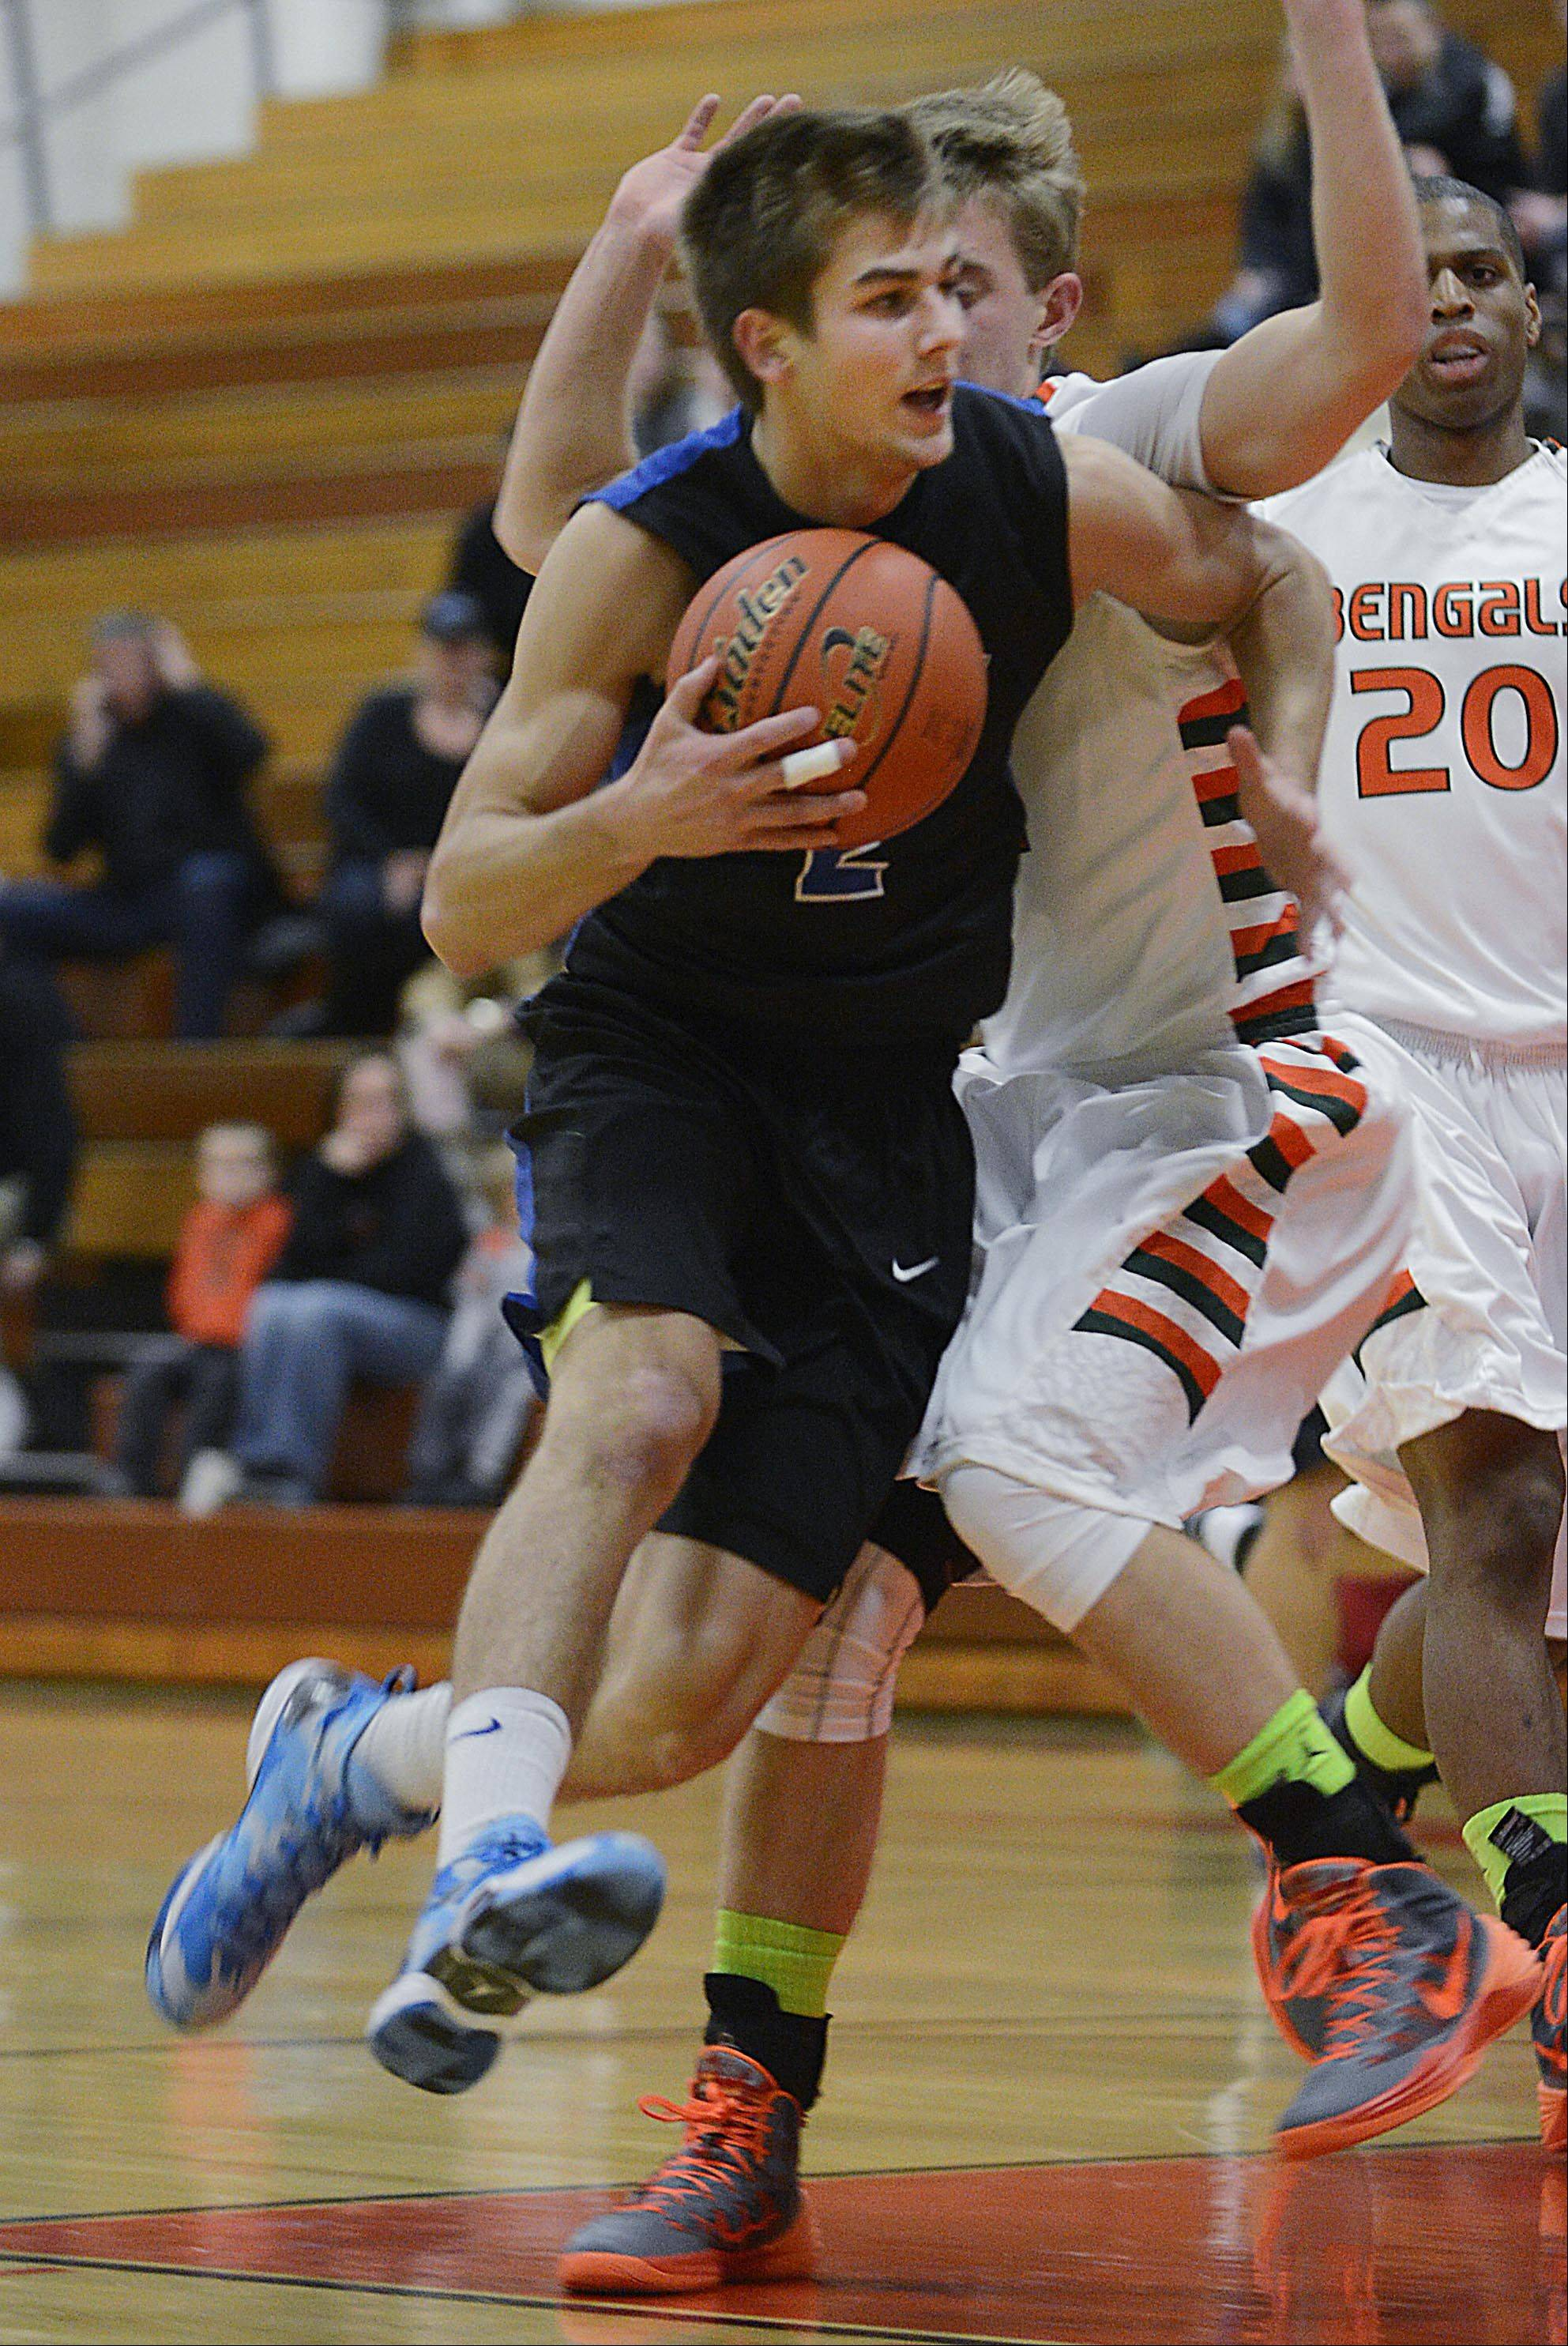 St. Charles North's Jake Ludwig drives around Plainfield East's Nick Novak Tuesday in St. Charles.